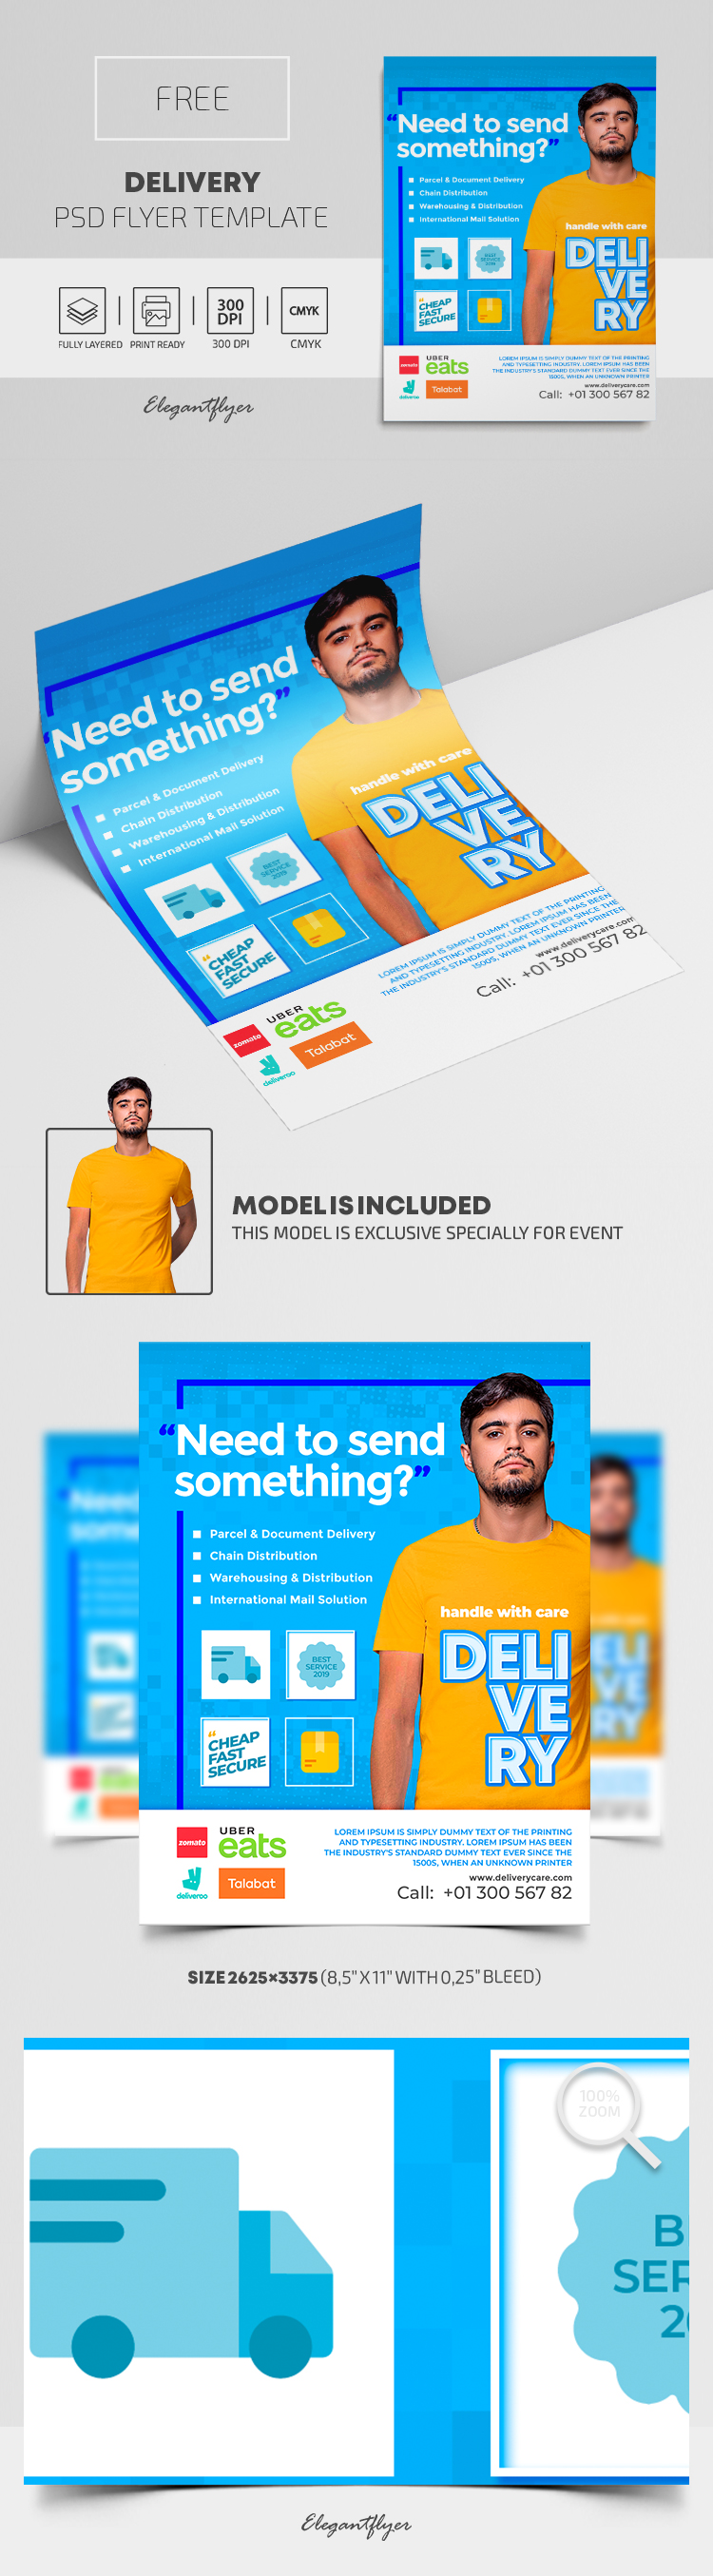 Delivery – Free PSD Flyer Template